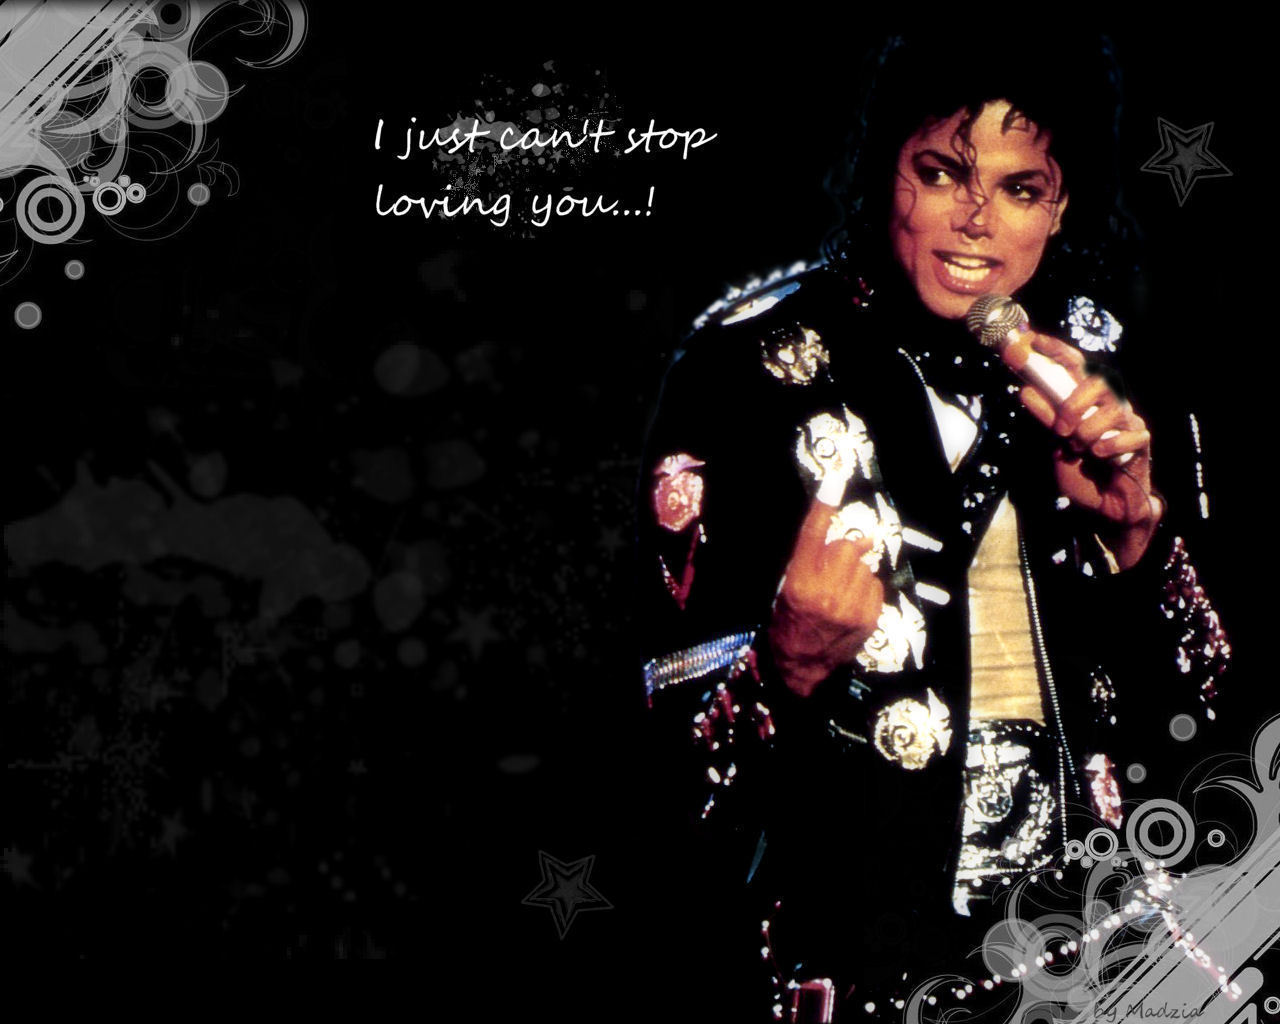 http://images2.fanpop.com/image/photos/10500000/I-JUST-CAN-T-STOP-LOVING-YOU-michael-jackson-10585684-1280-1024.jpg